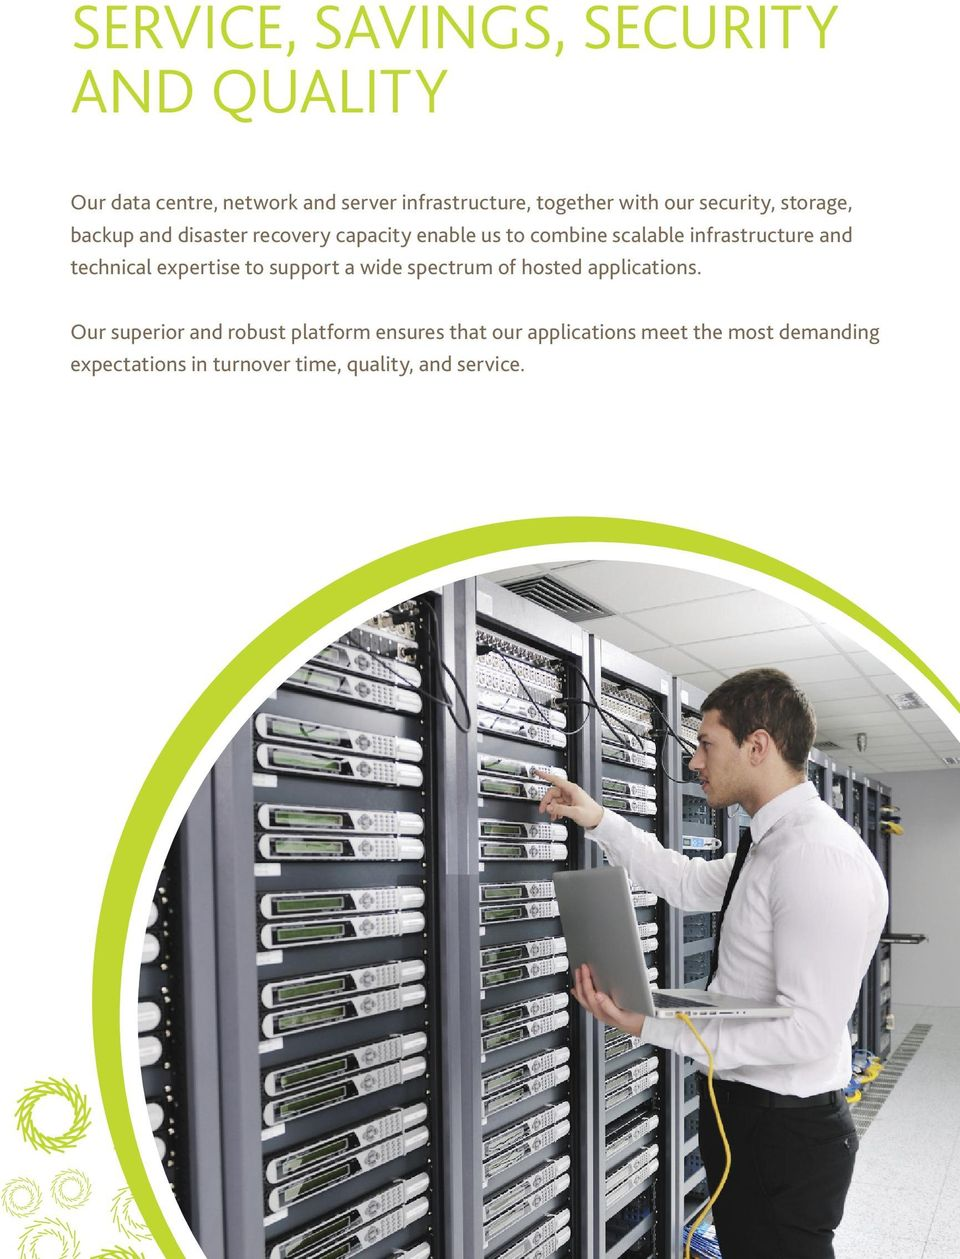 technical expertise to support a wide spectrum of hosted applications.